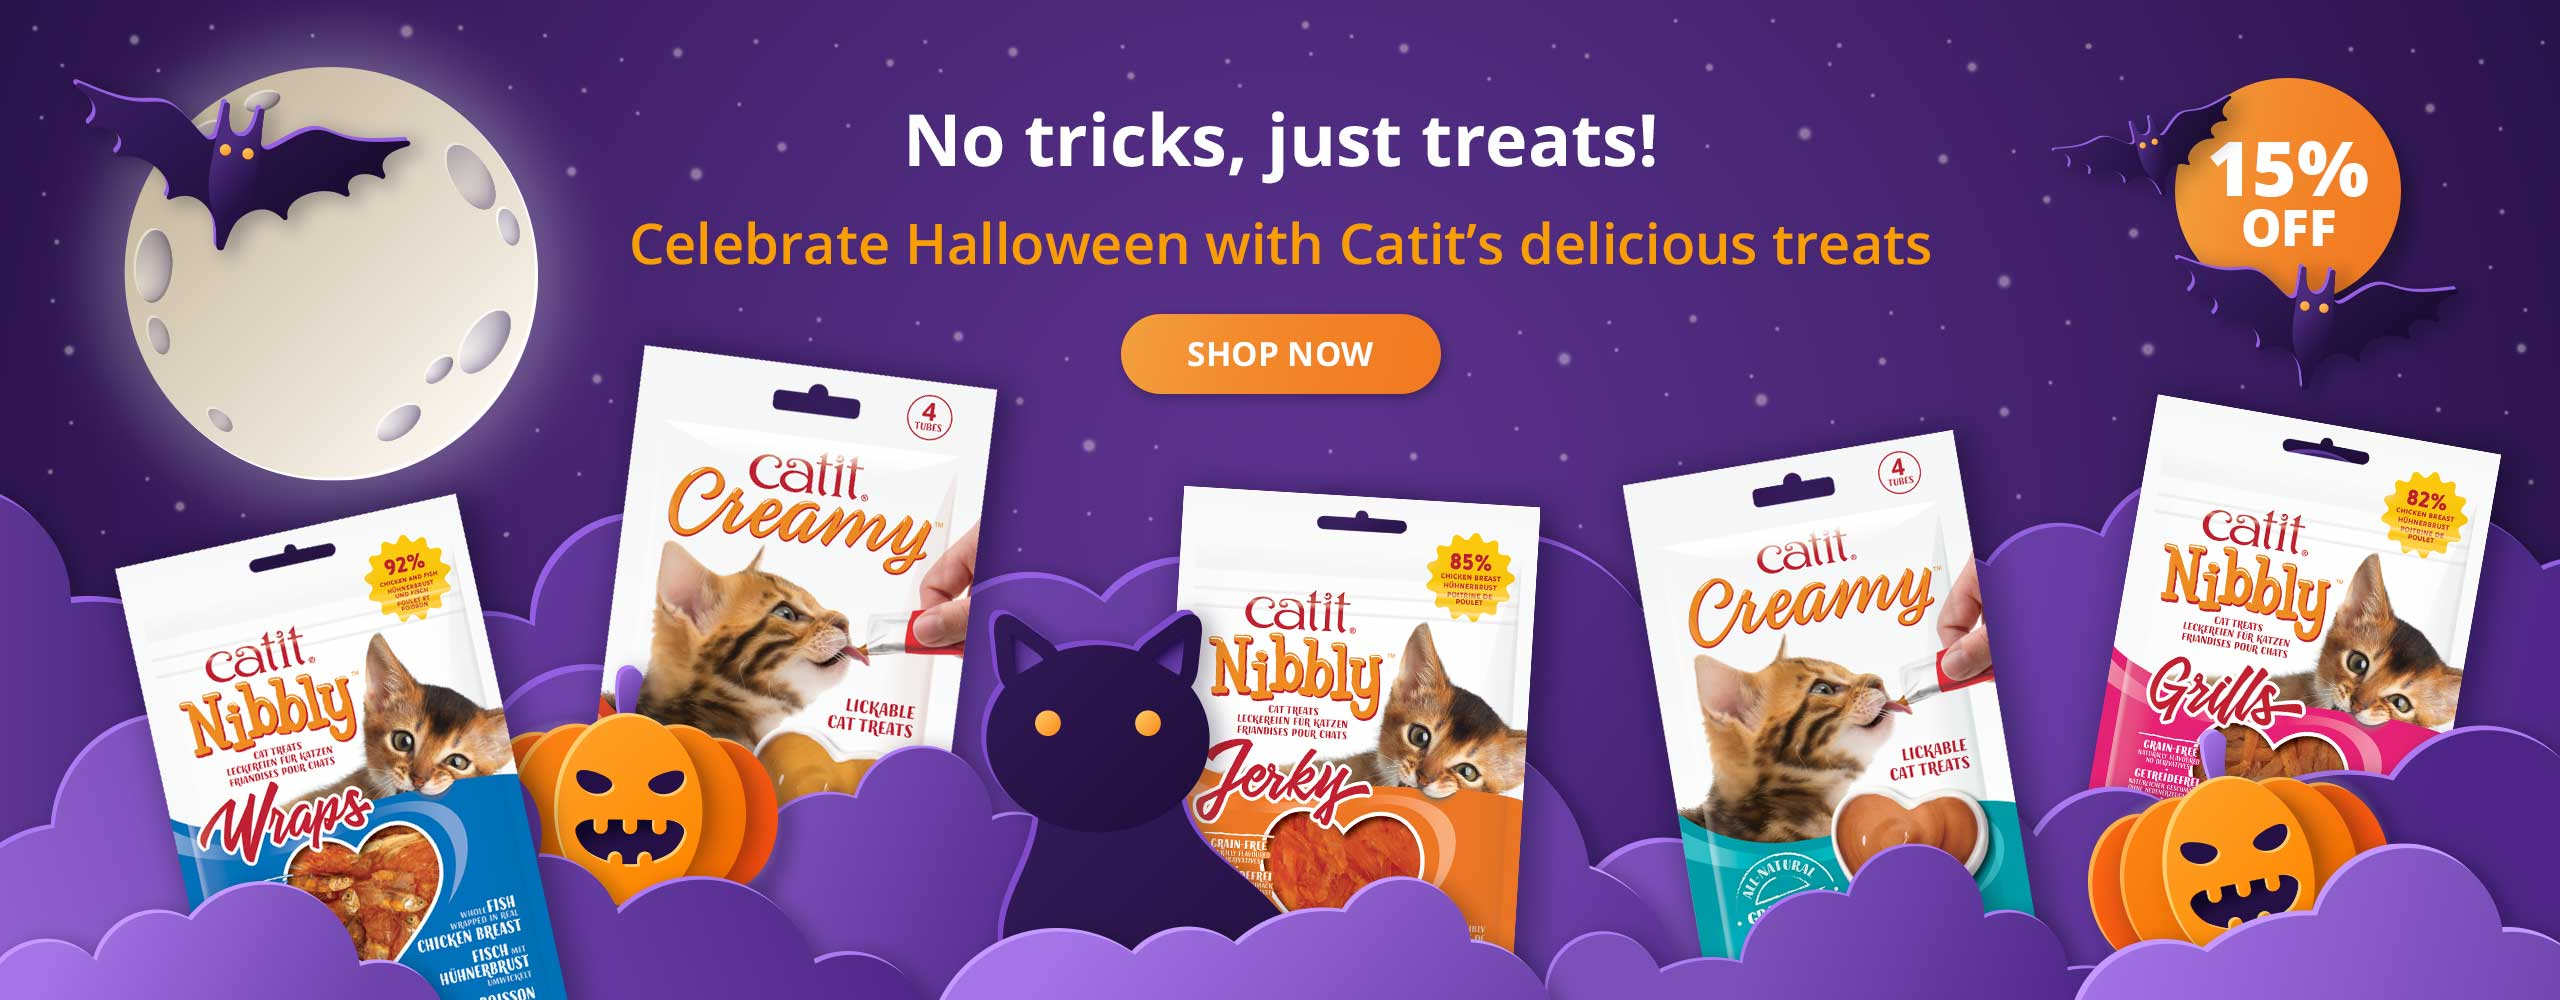 No tricks, just treats! Celebrate Halloween with Catit's delicious treats - shop now